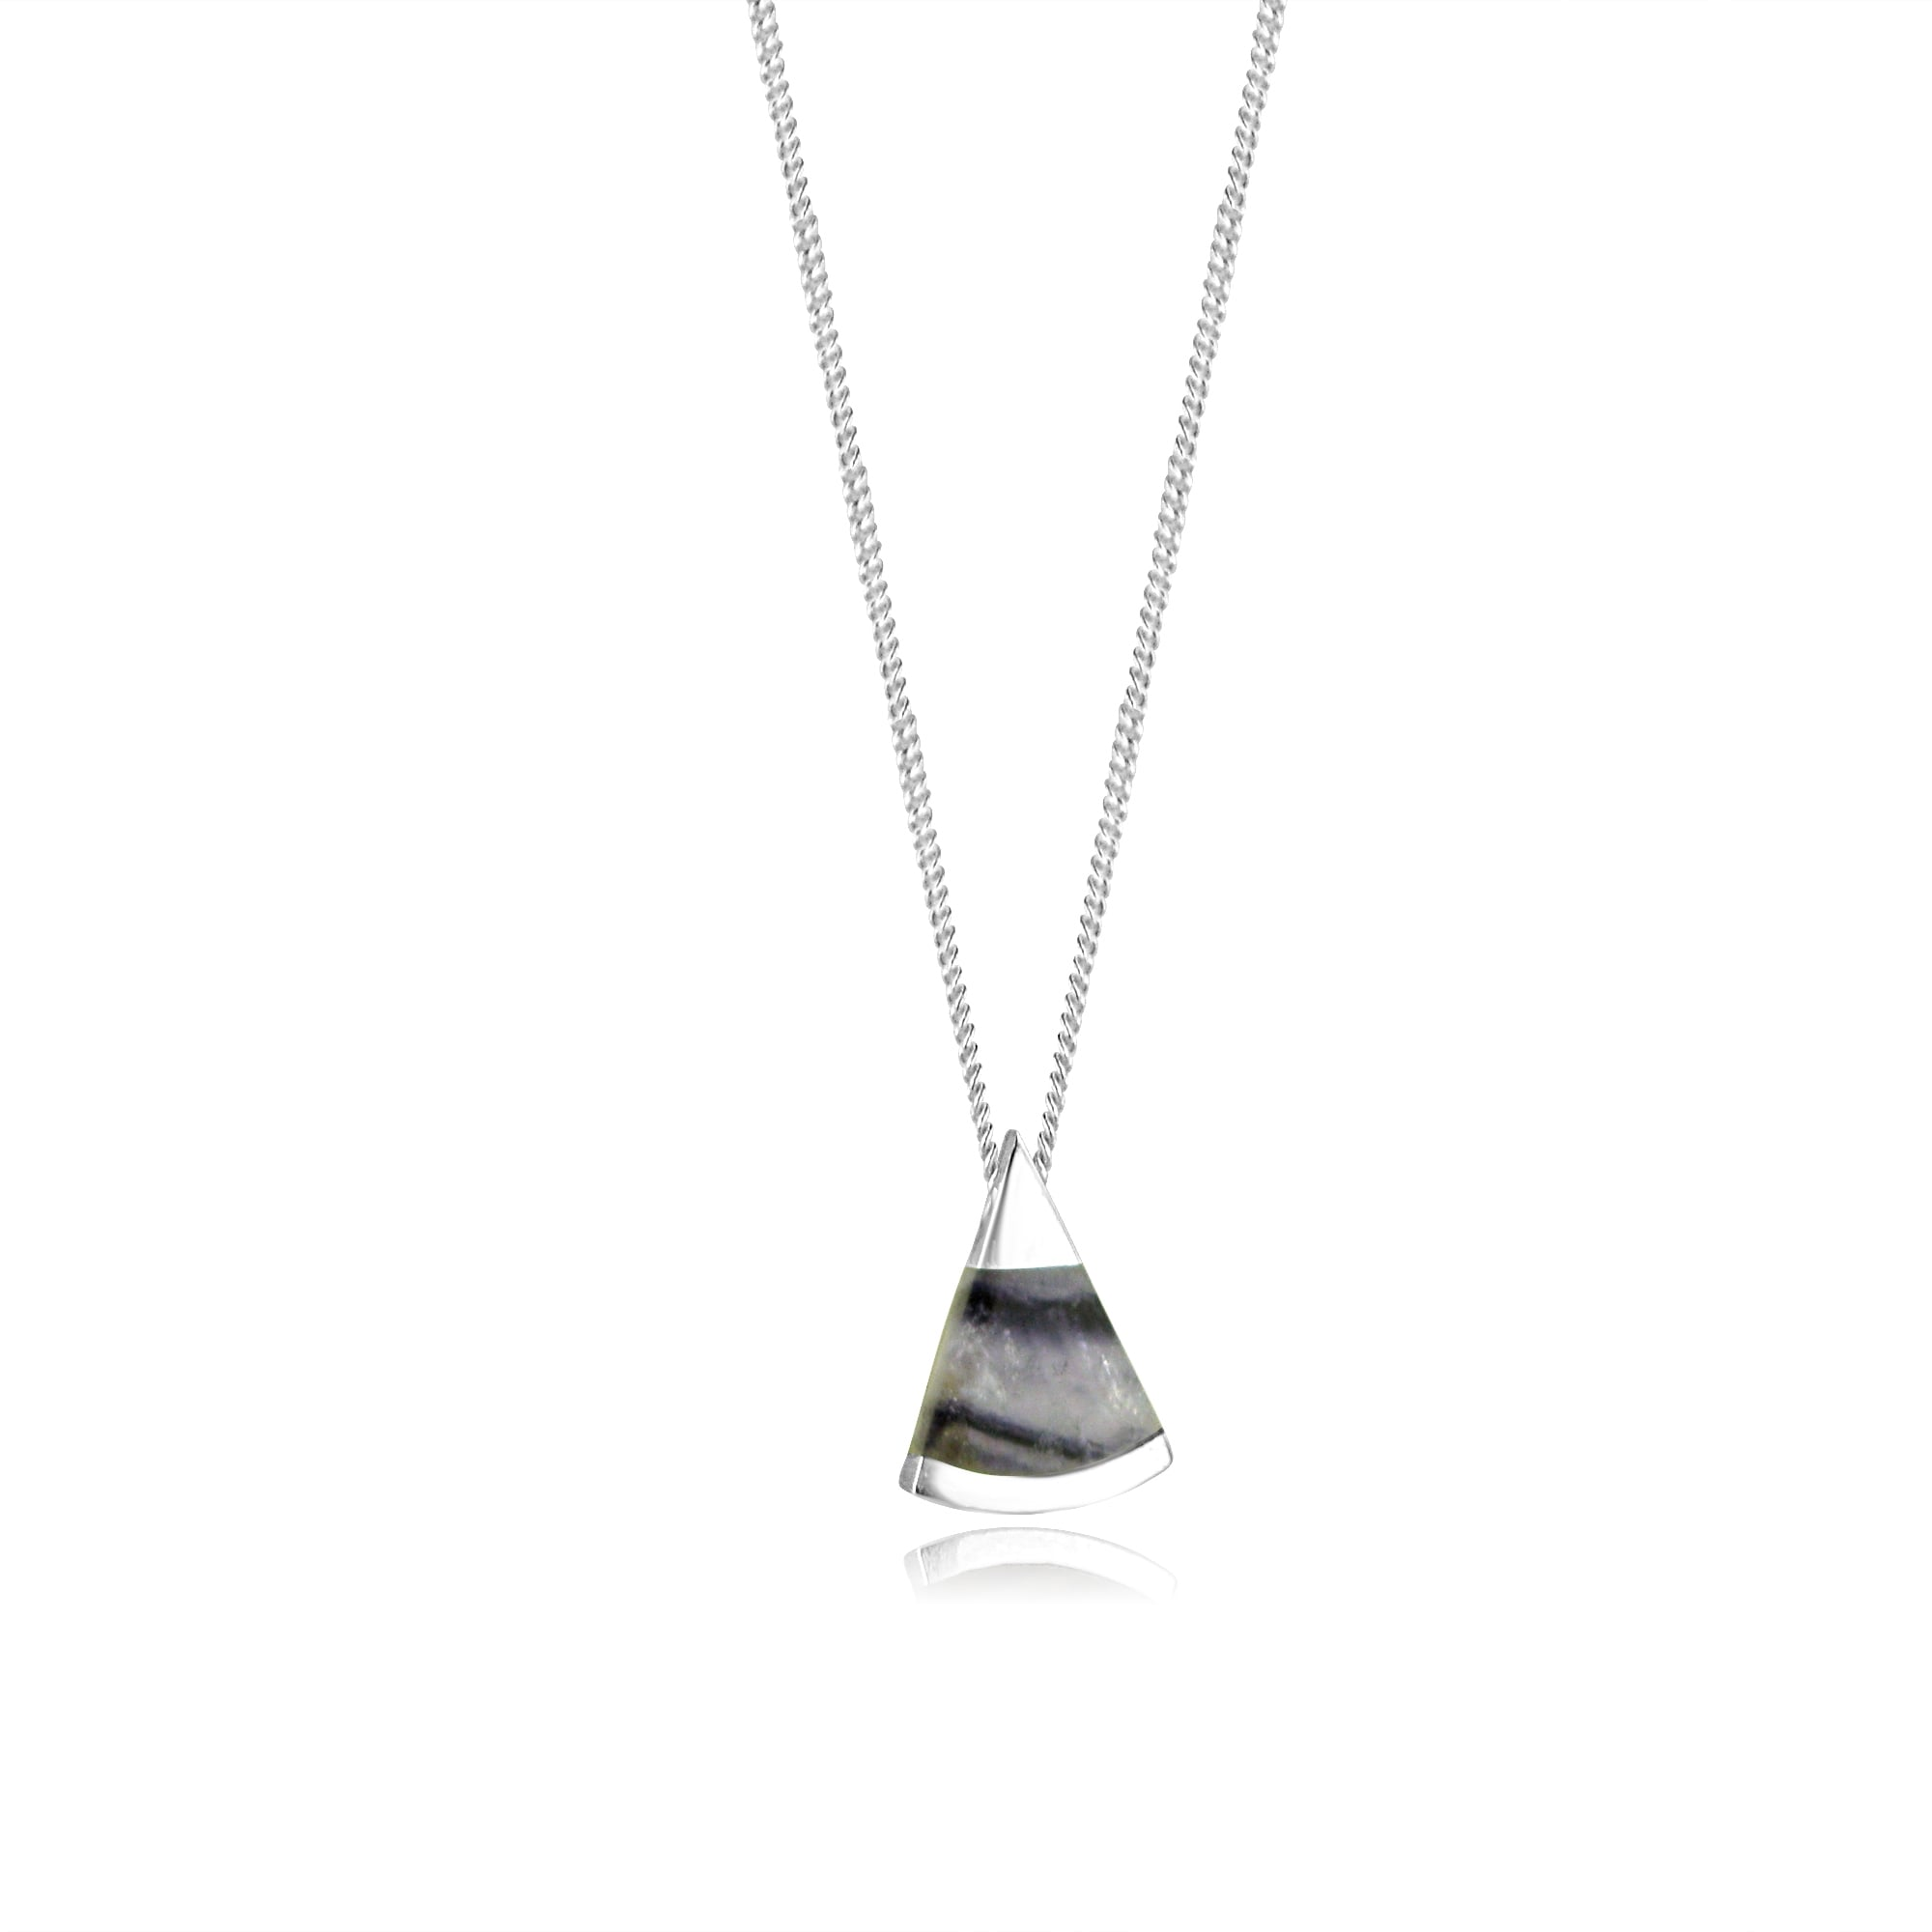 and india diamond for tanishq titan price best pendant triangular gold yellow buy women online product at